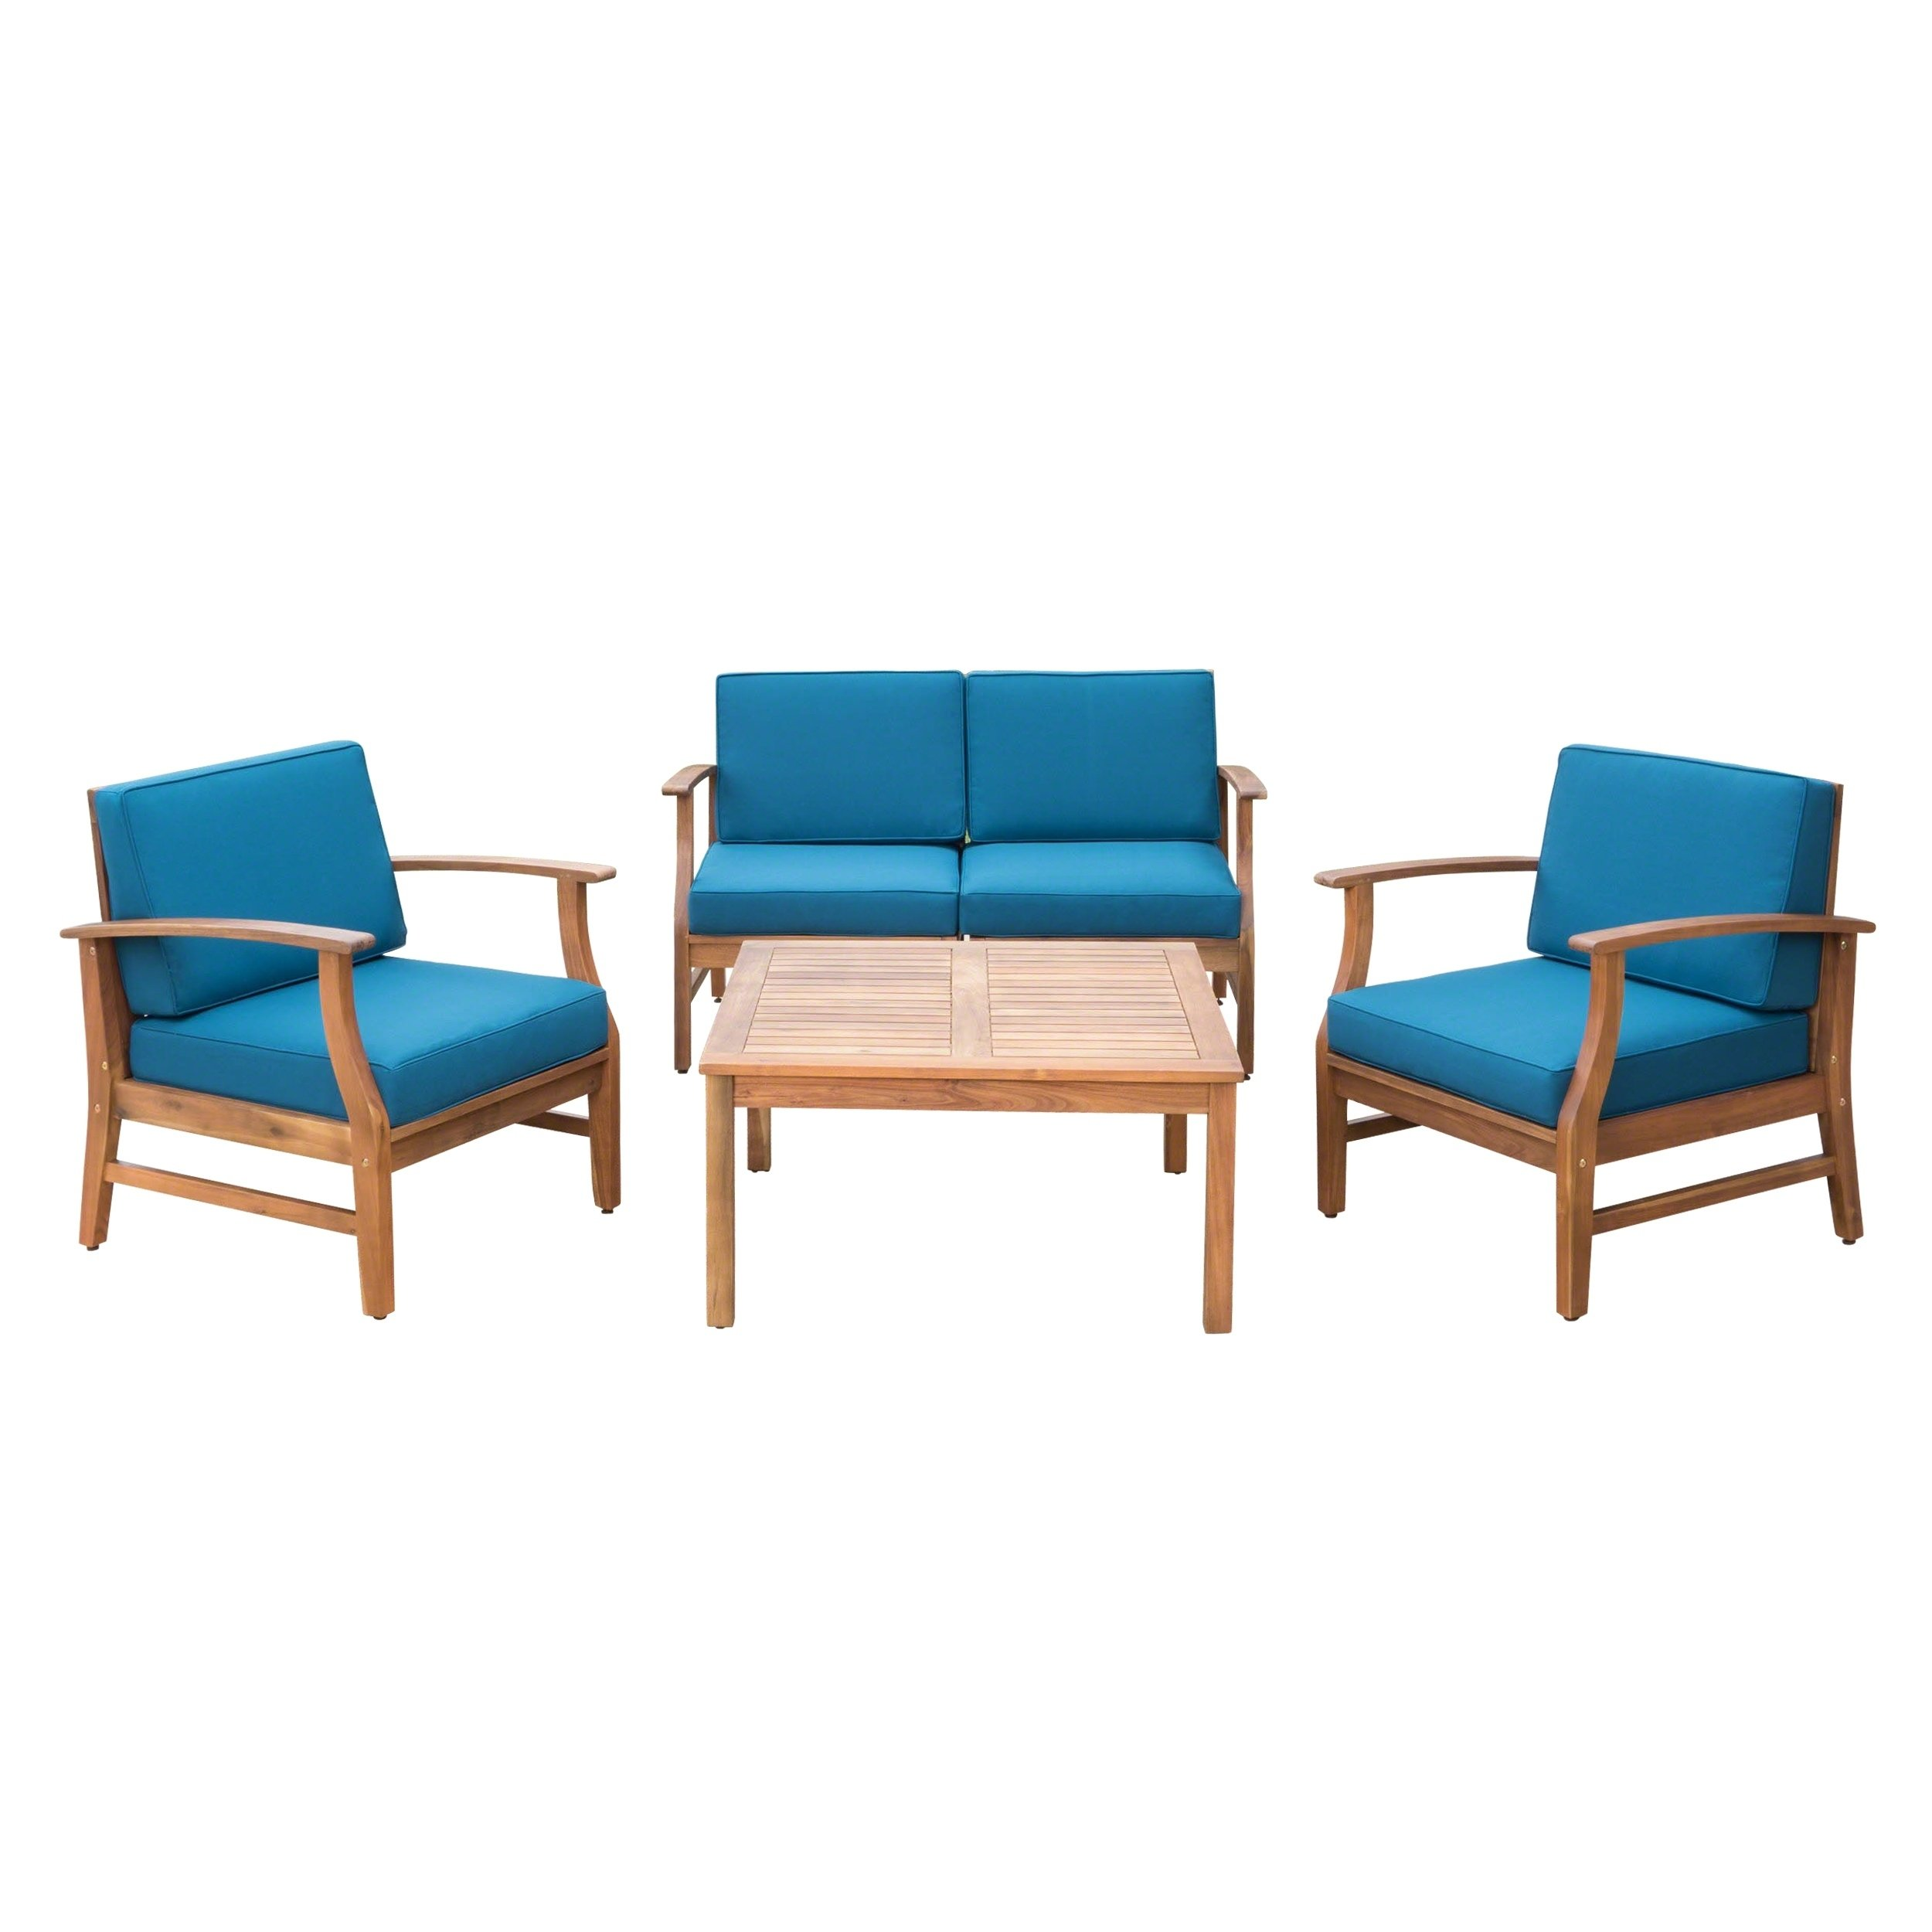 Christopher Knight Home Perla Outdoor Acacia Wood 5-piece Chat Set with Cushions by